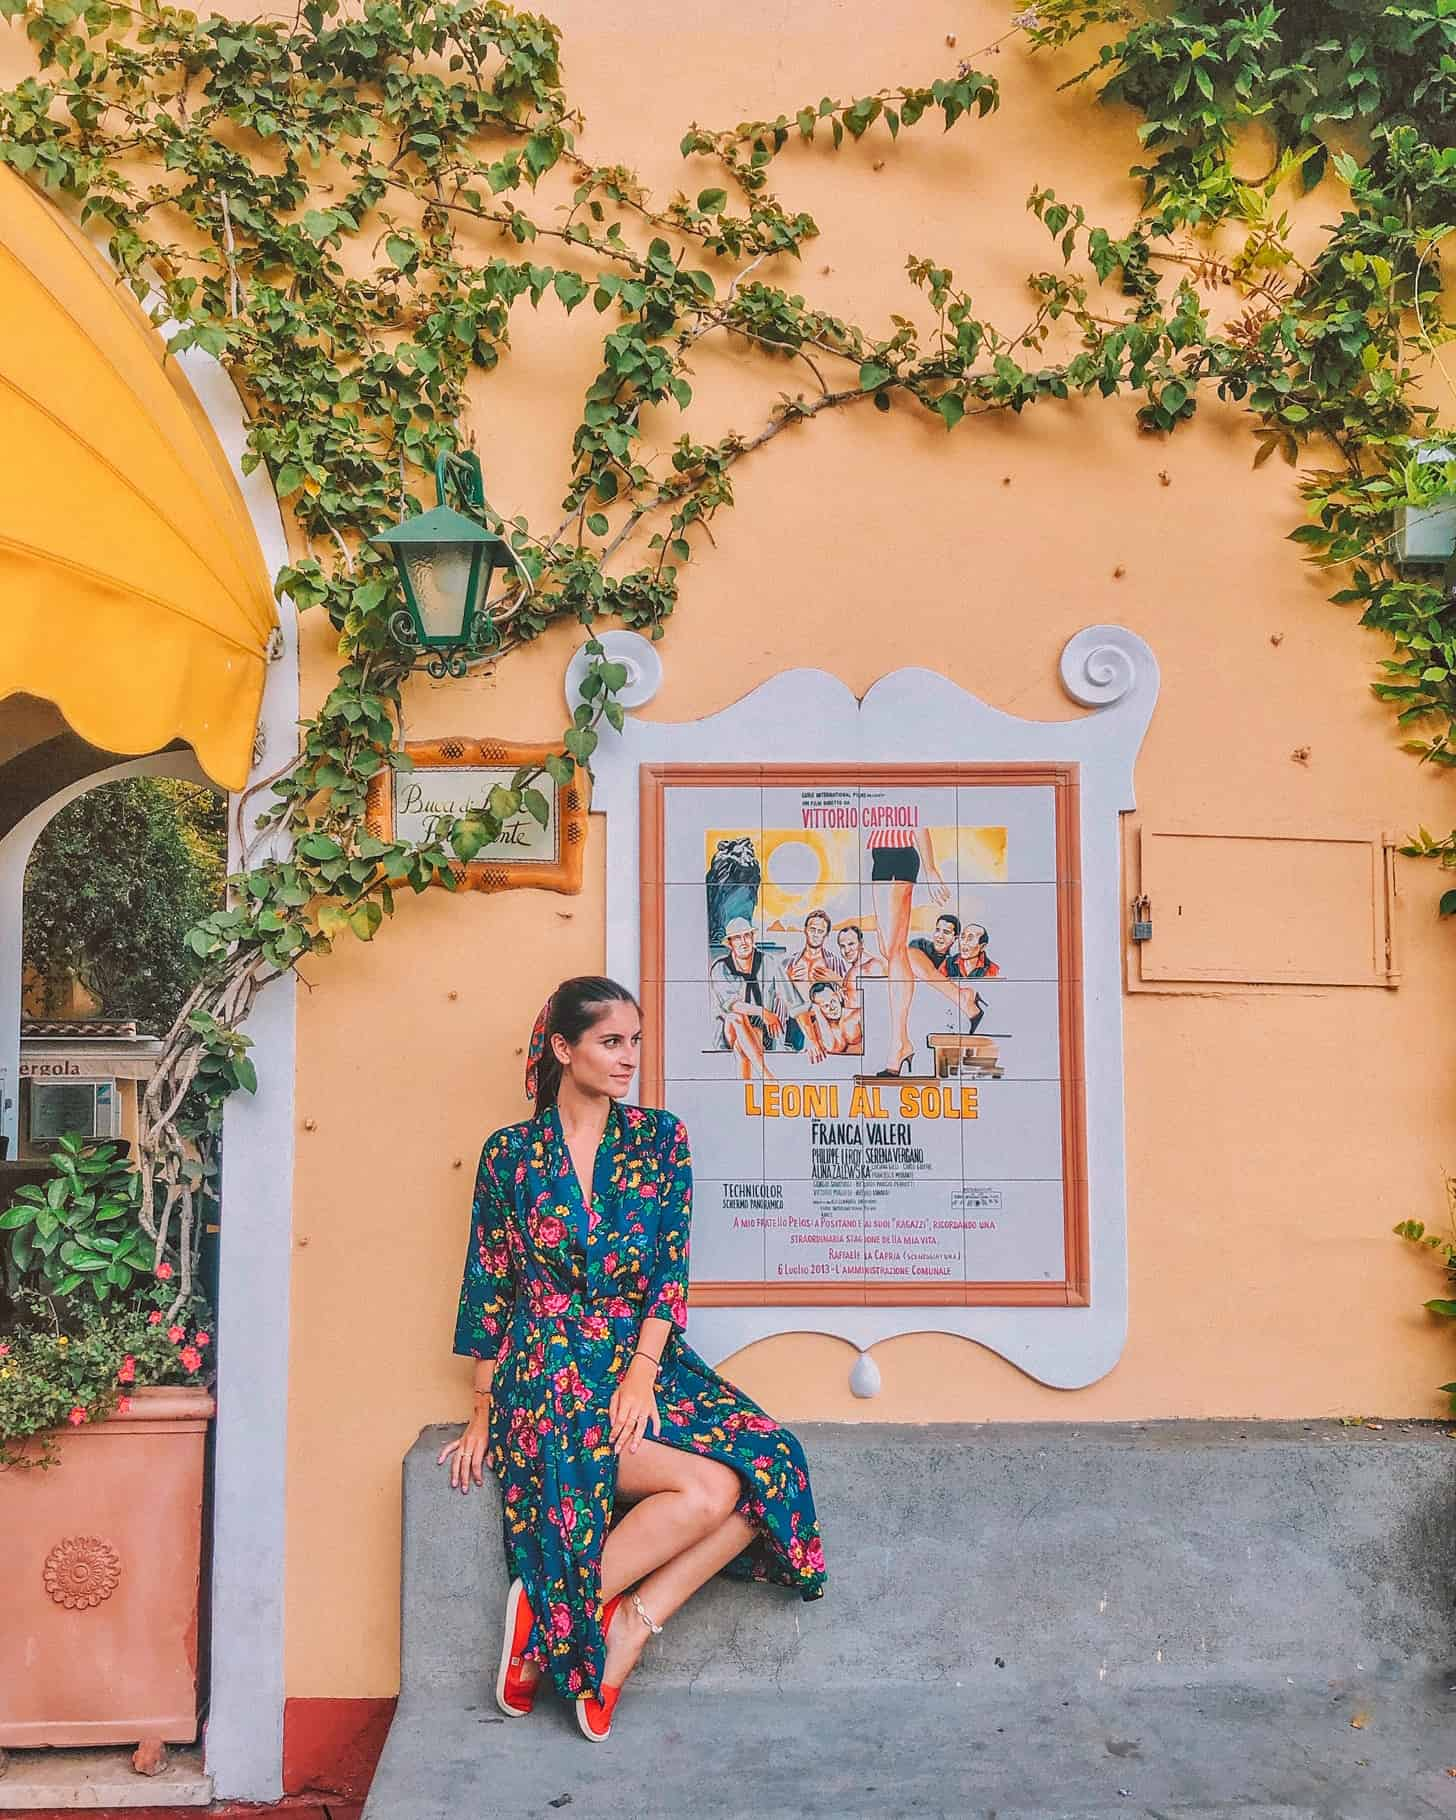 Most Instagrammable places in Positano